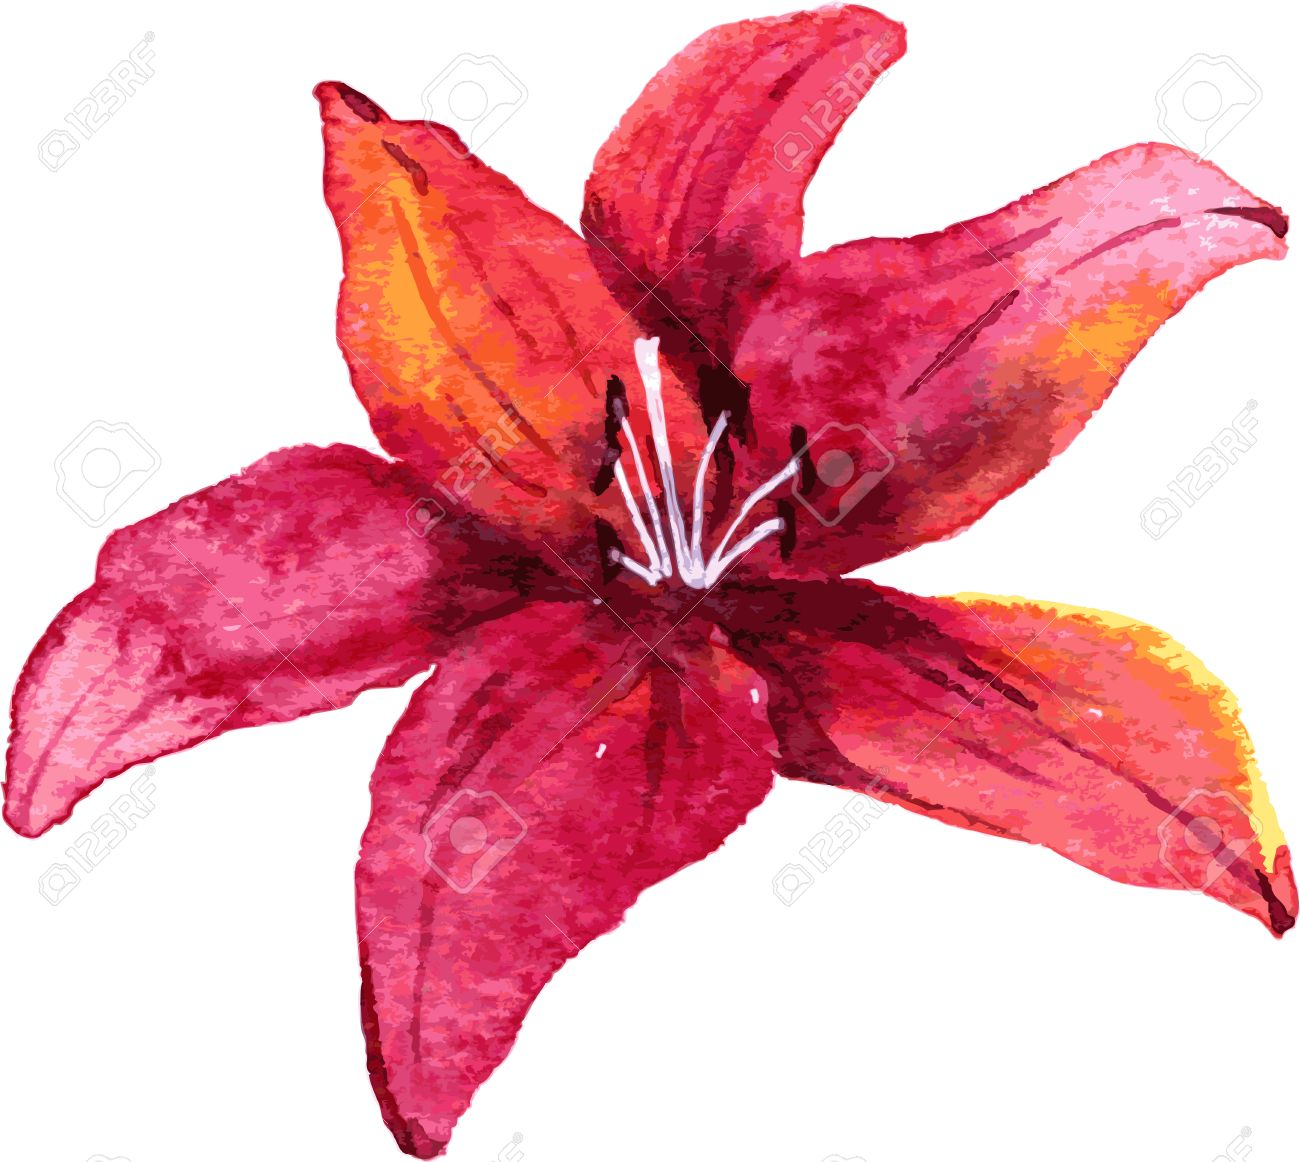 Red Flower Drawing - Red Lily Flower Drawing By Watercolor, Hand Drawn Vector ...